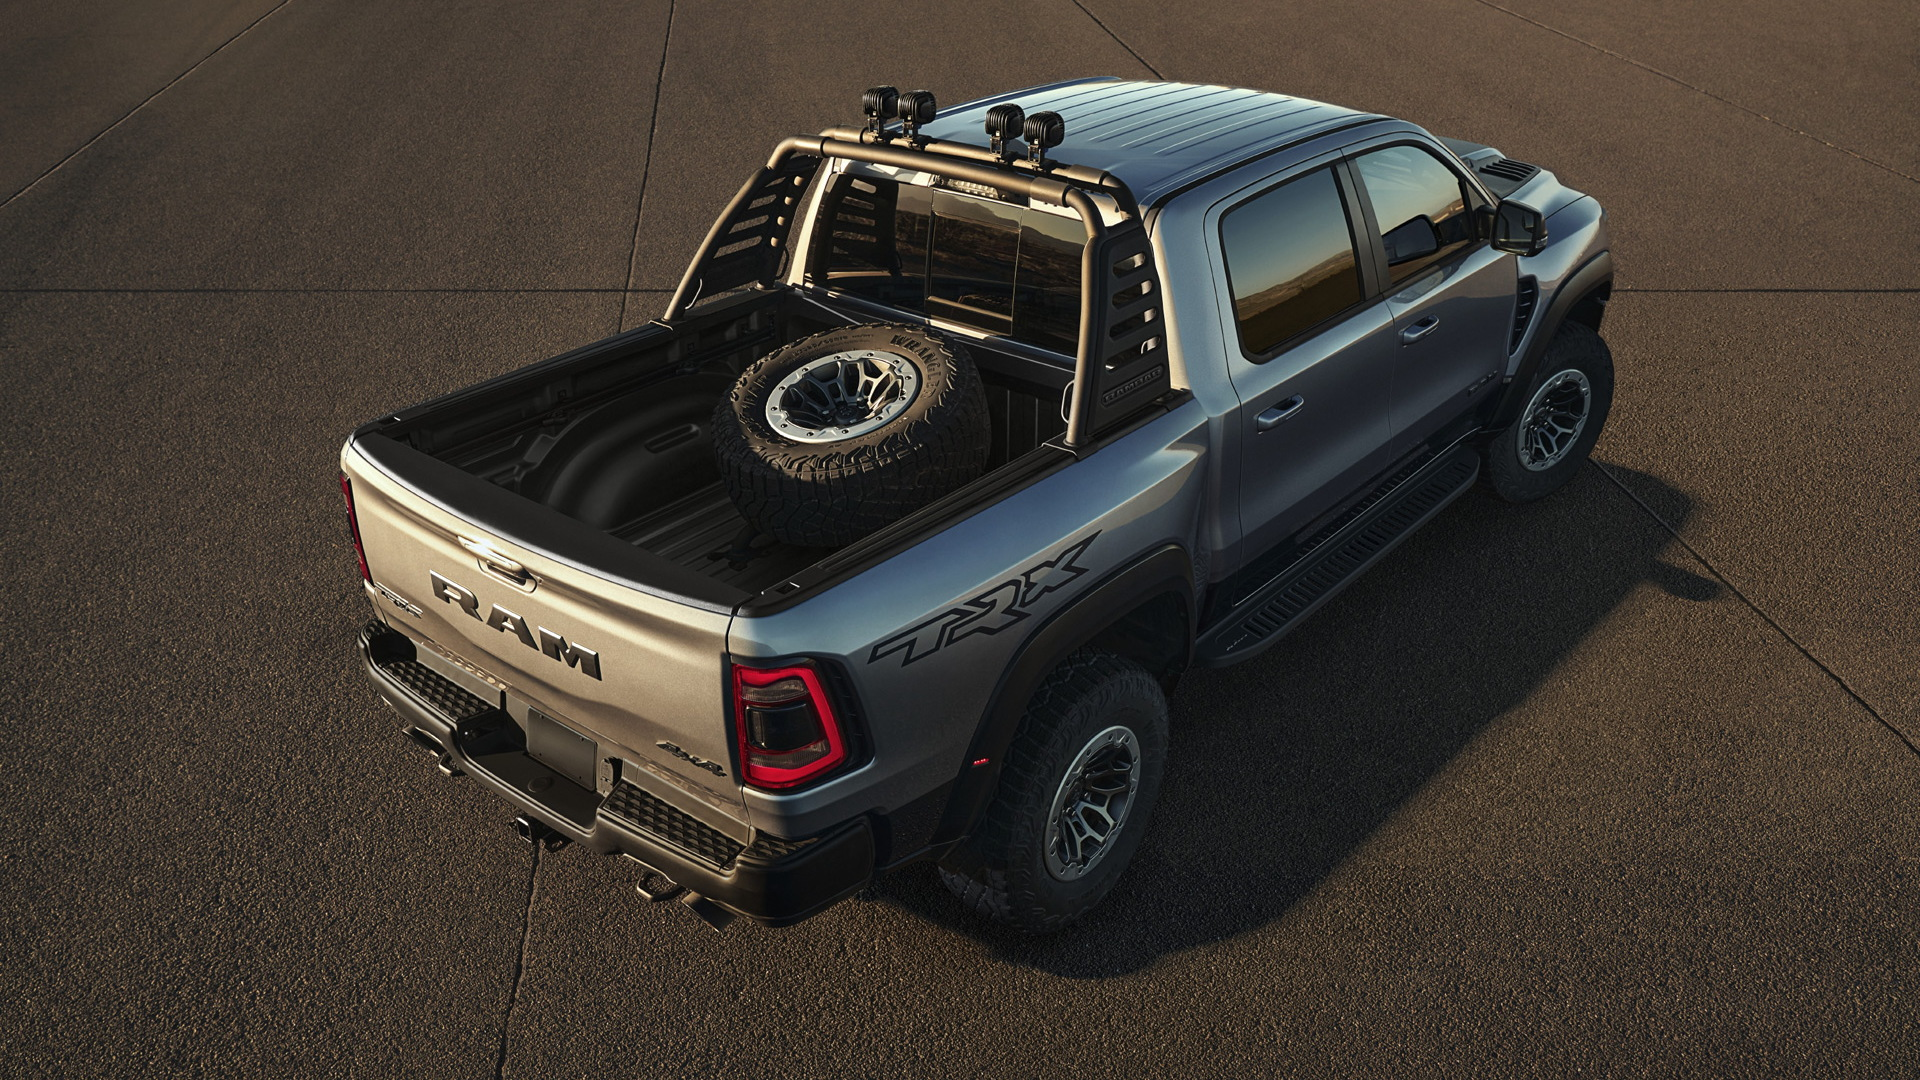 2021 Ram 1500 TRX fitted with Mopar accessories